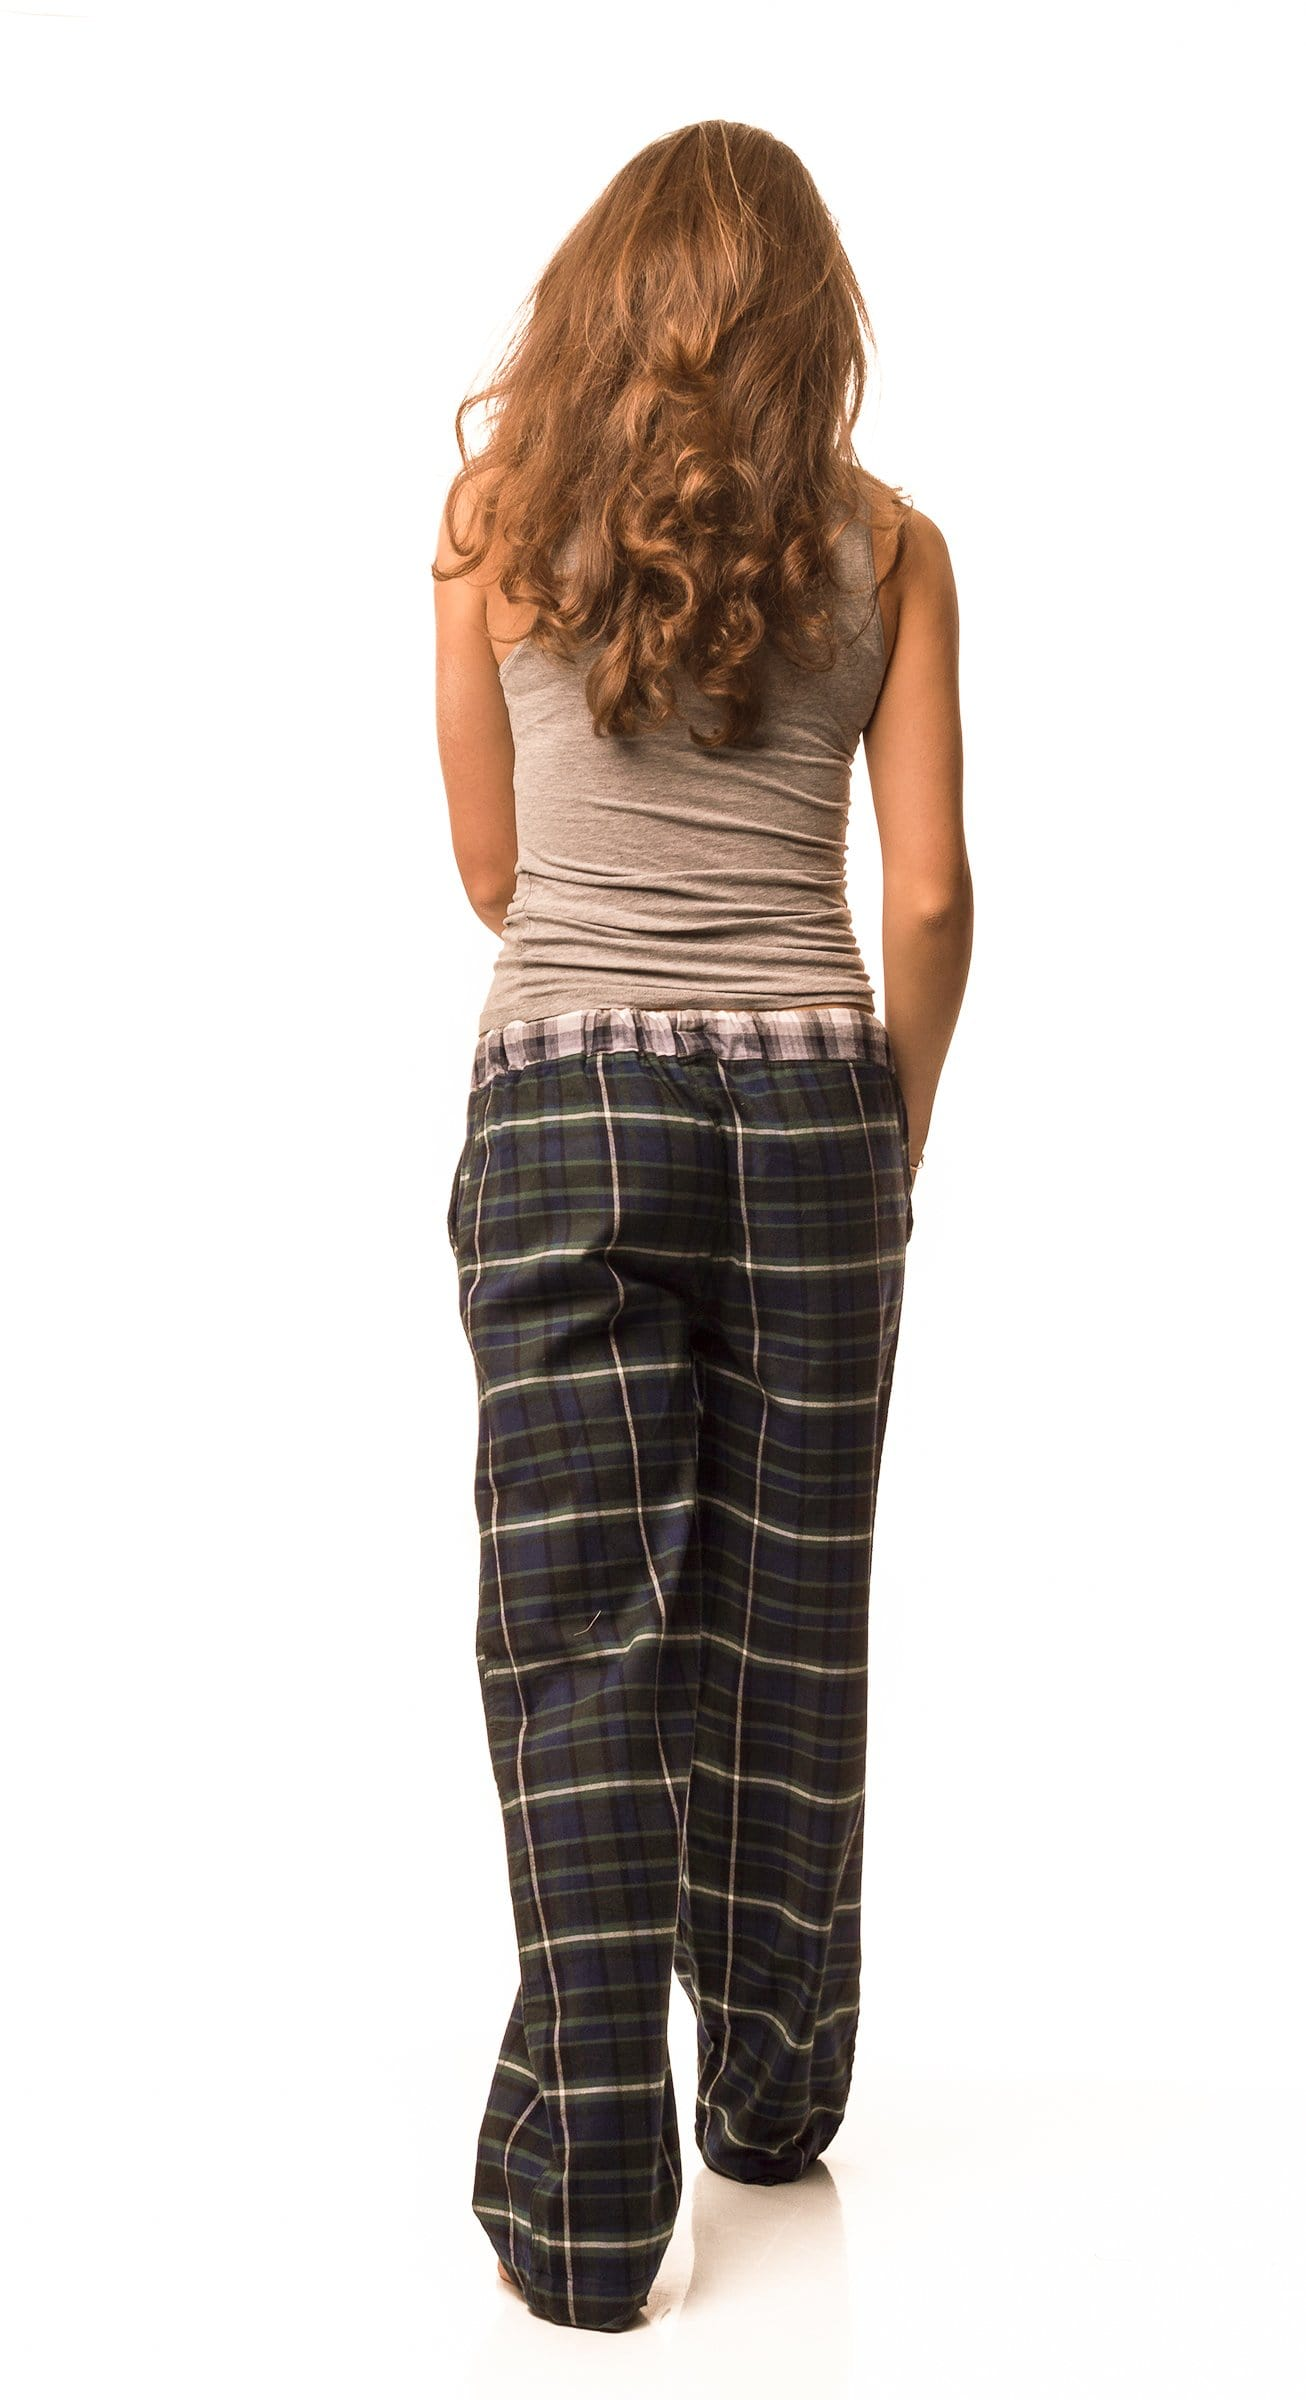 Tillingbourne Bottle green/navy check lounge pants - Women's